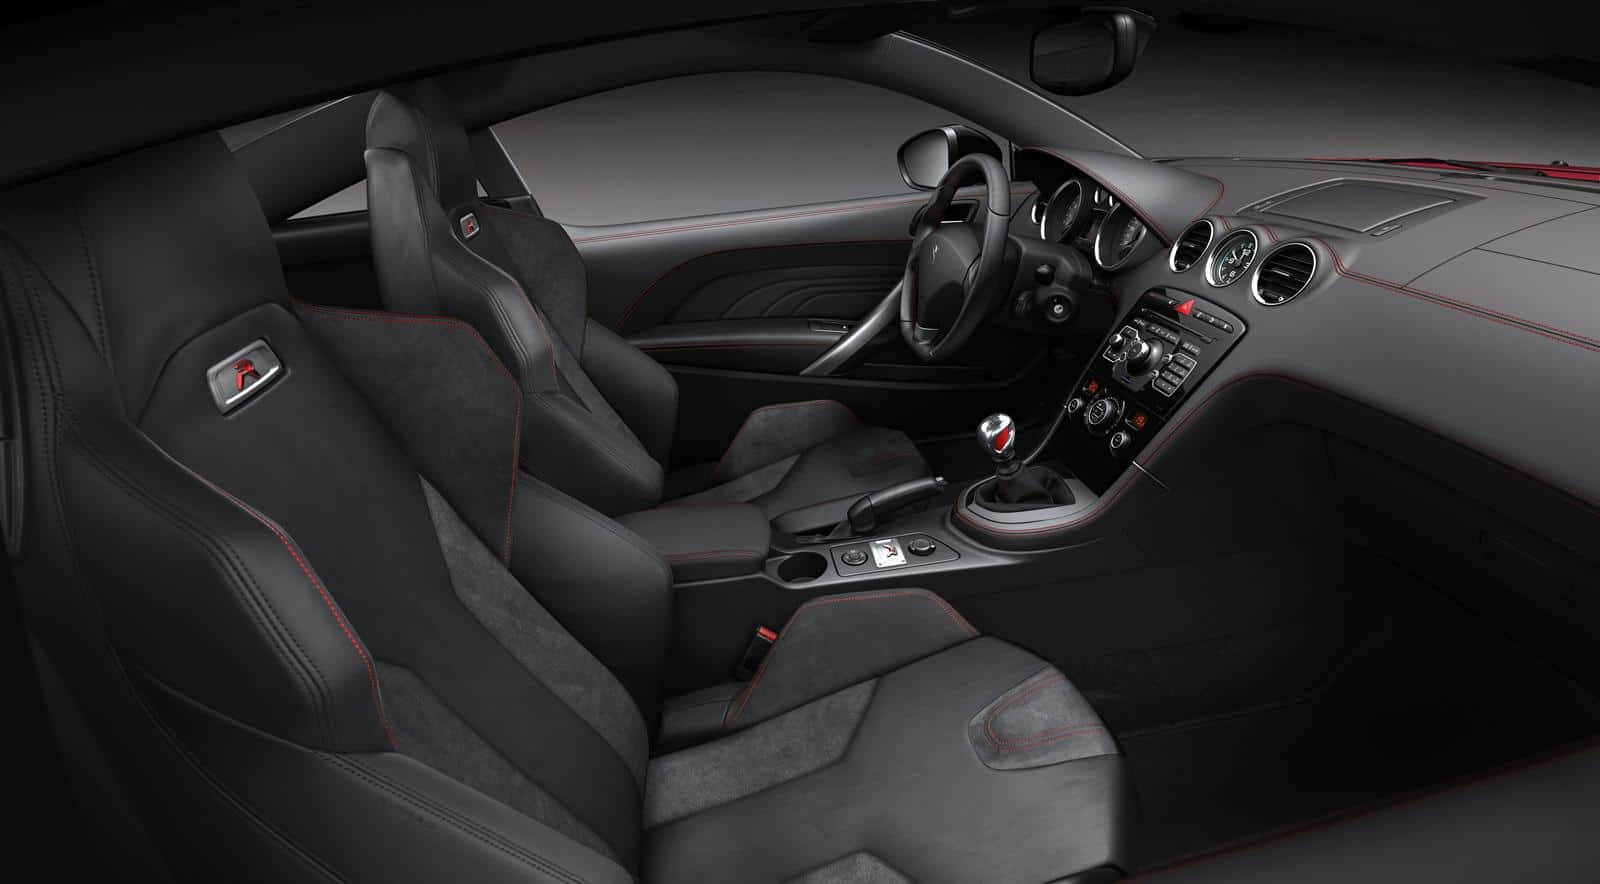 peugeot rcz r 270 ch fiche technique et prix. Black Bedroom Furniture Sets. Home Design Ideas